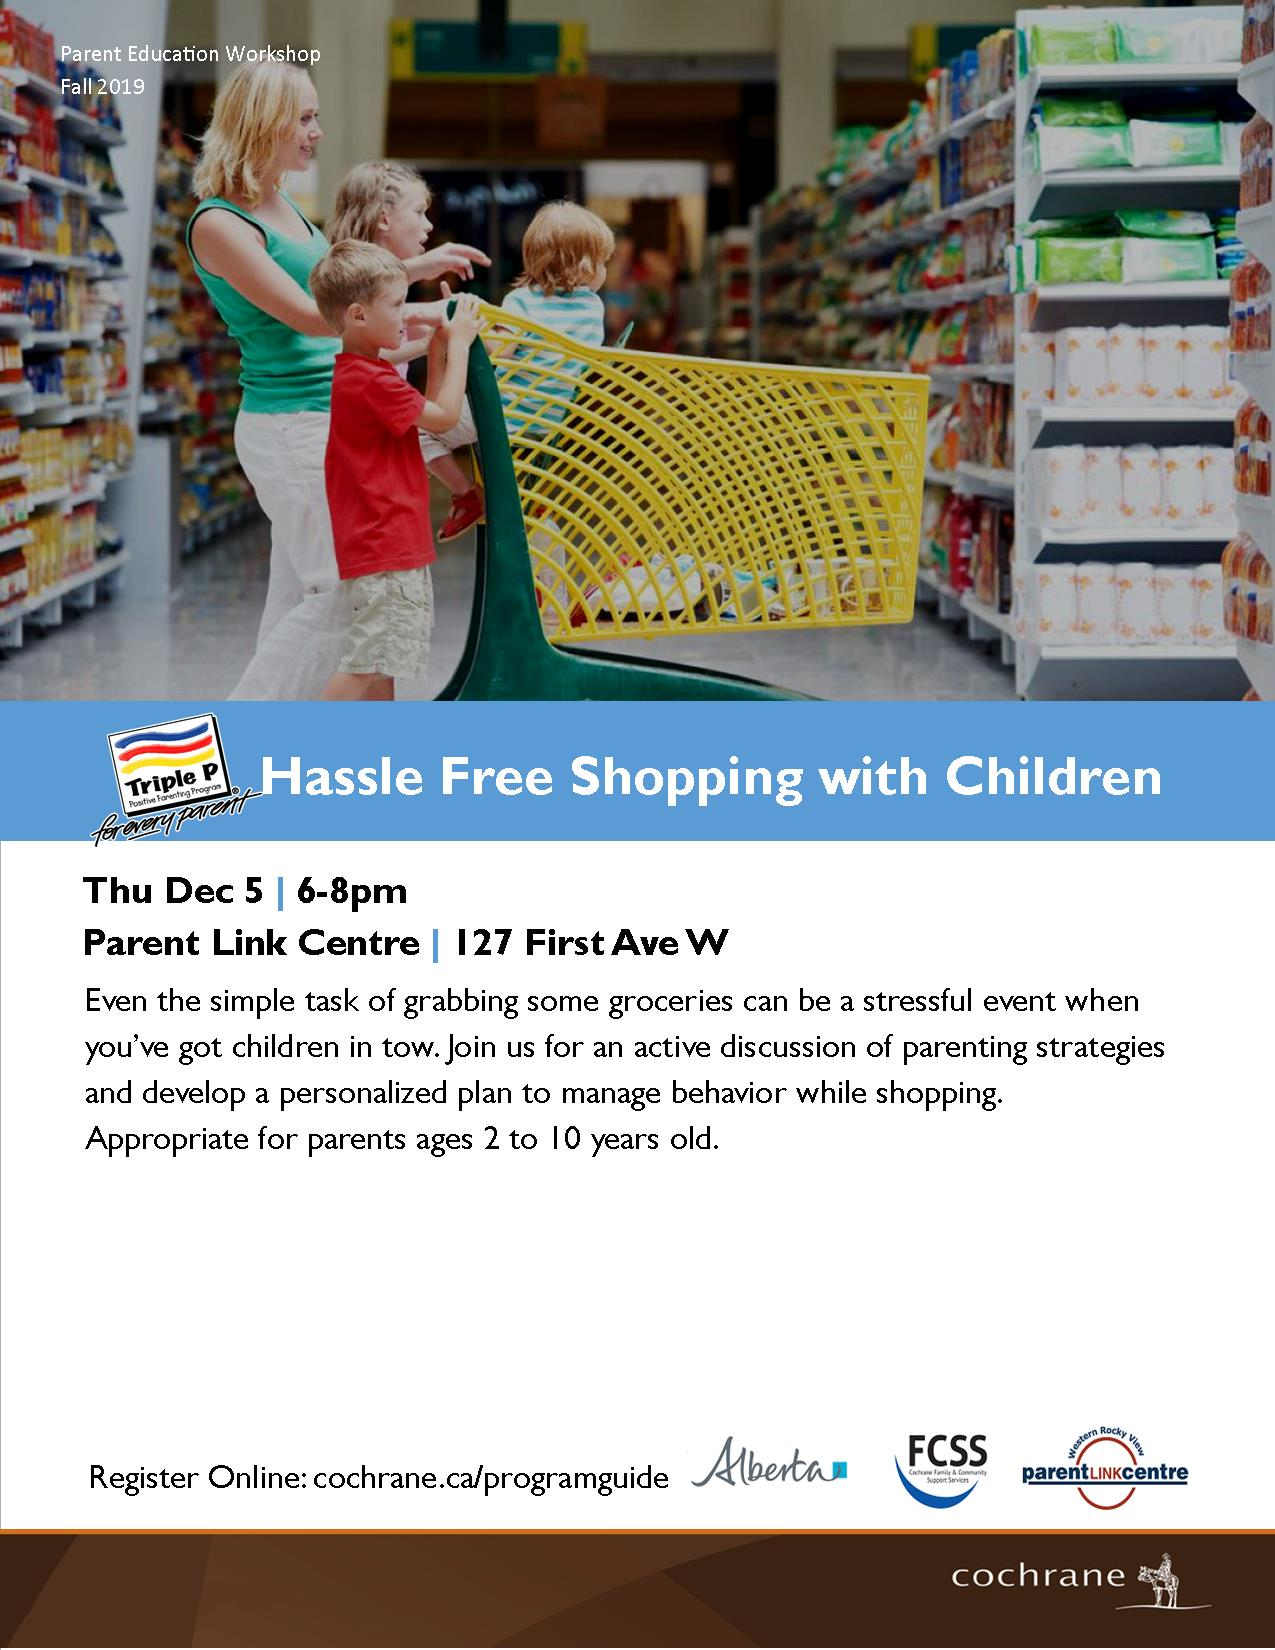 Hassle Free Shopping with Children